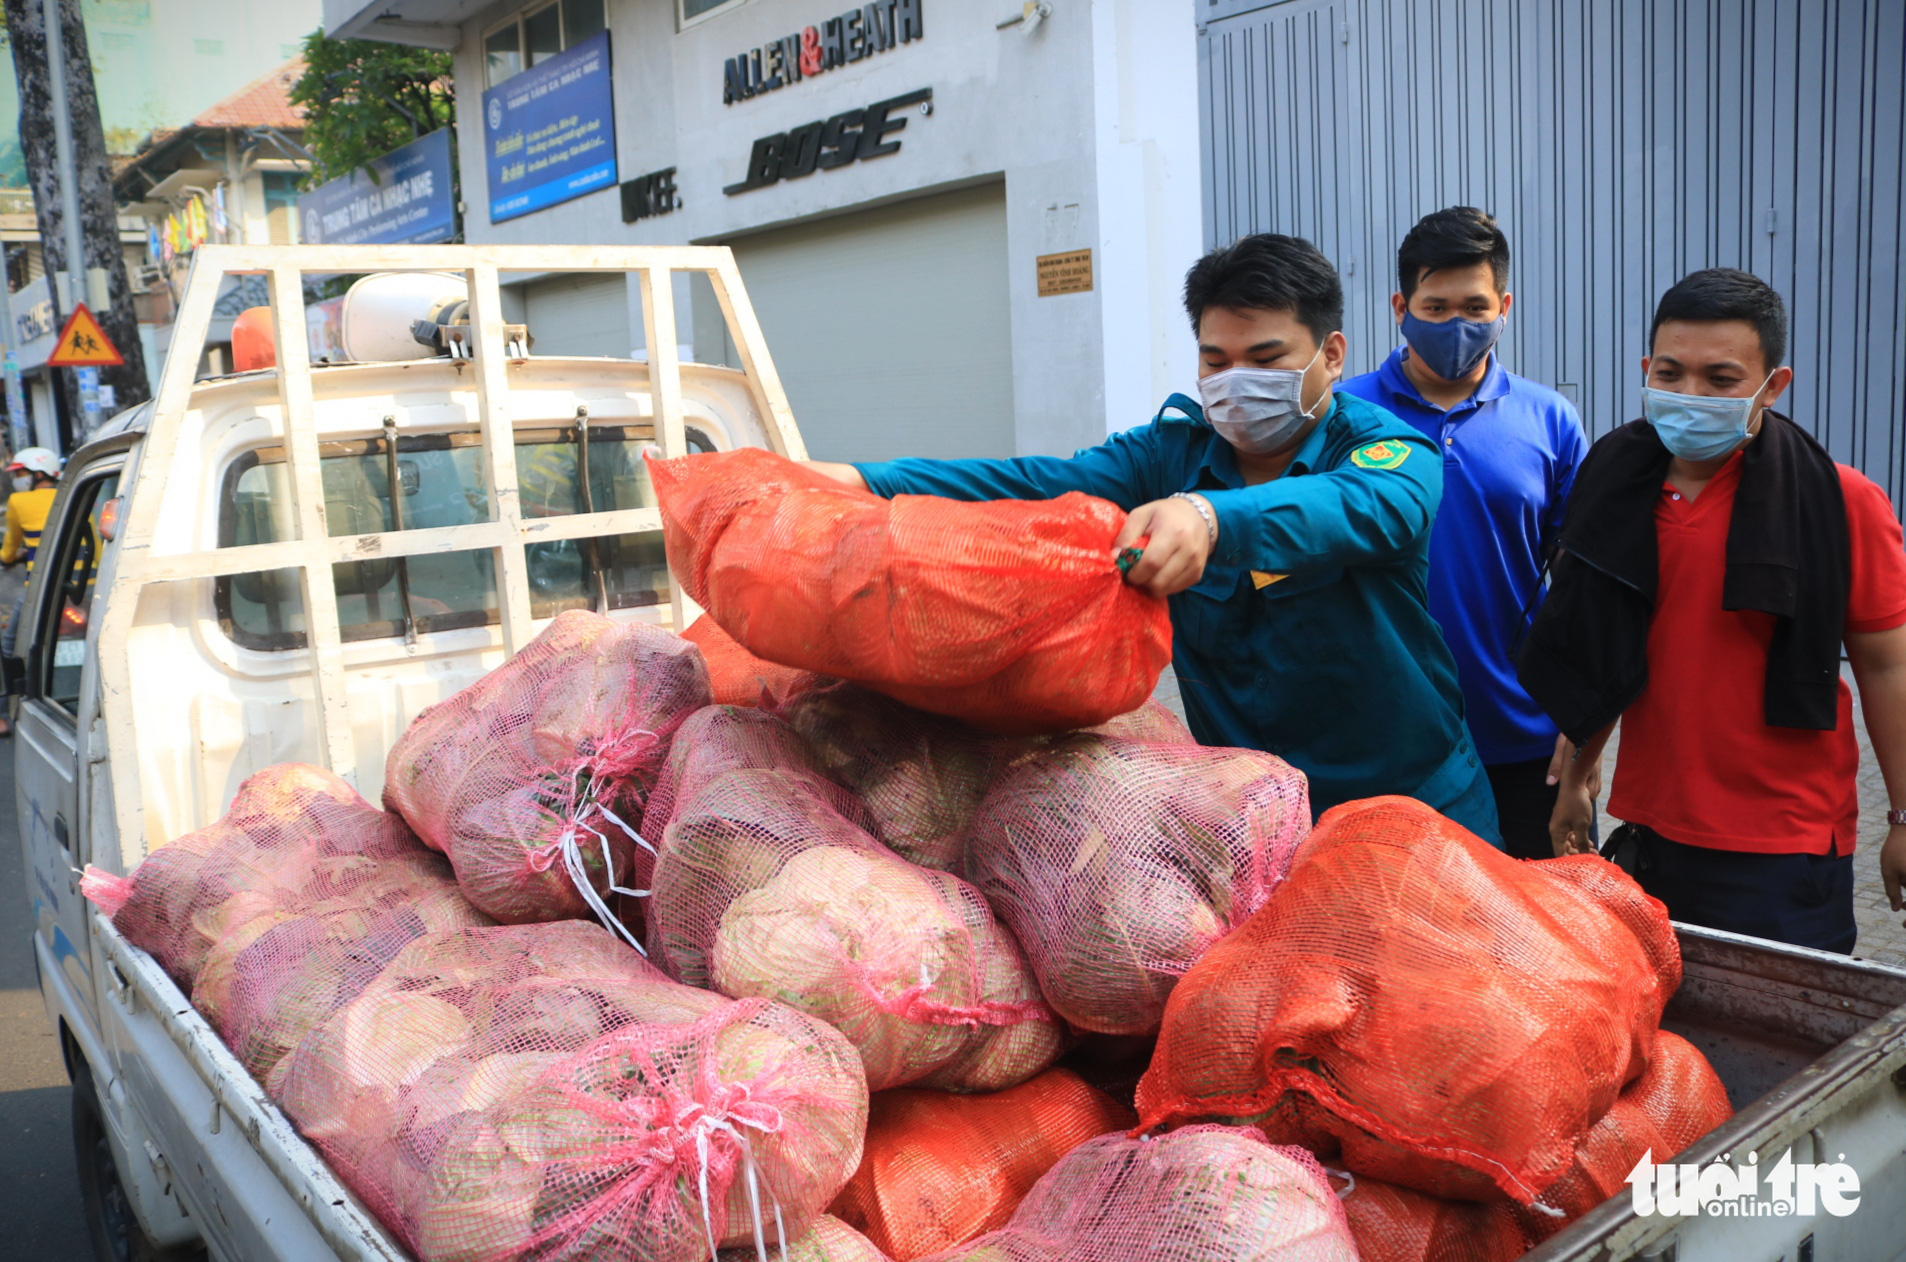 Large bags of cabbage from northern Hai Duong Province are loaded onto a mini truck in District 3, Ho Chi Minh City, February 23, 2021. Photo: Nhat Thinh / Tuoi Tre